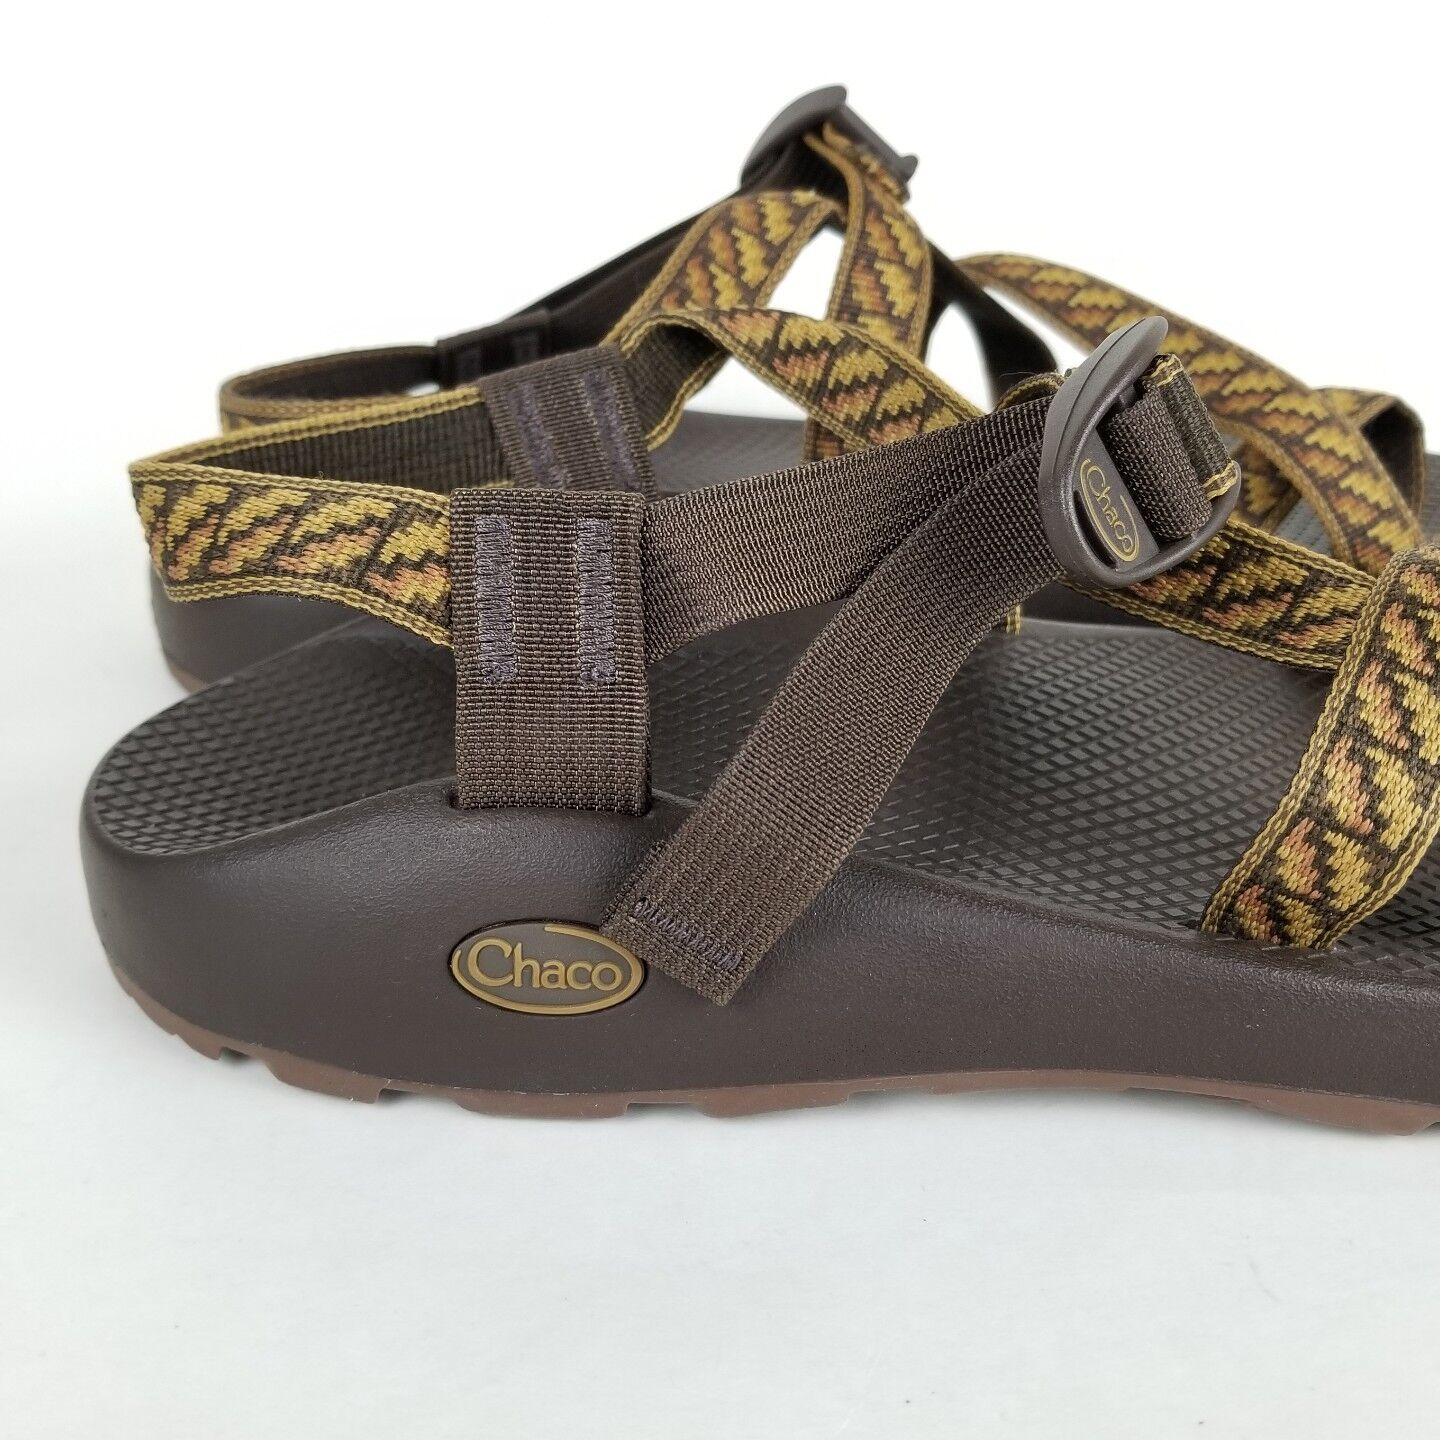 Chaco Z2 Outdoor Classic Men's Brown Pattern Outdoor Z2 Sports Sandals Size 14 459357